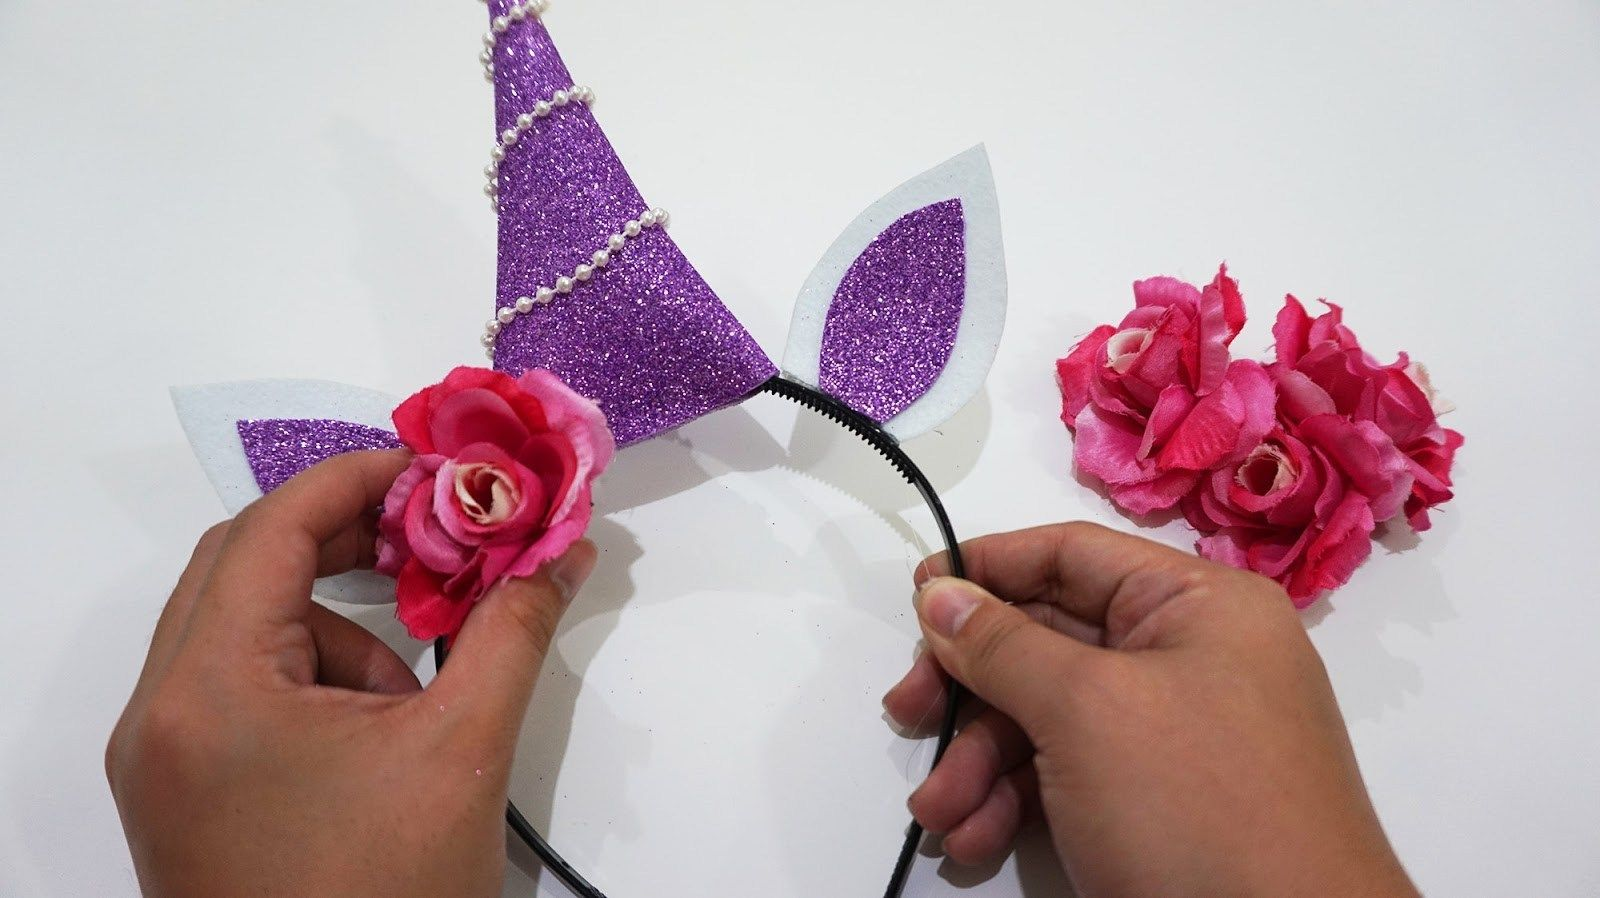 17 Gorgeous DIY Unicorn Party Headbands - Diy unicorn party, Diy unicorn headband, Unicorn headband, Party headband, Unicorn party, Unicorn crafts - Make your unicorn themed birthday party even more magical with one of these goreous DIY Unicorn headbands  Easy & cheap to make these headbands are a hit!